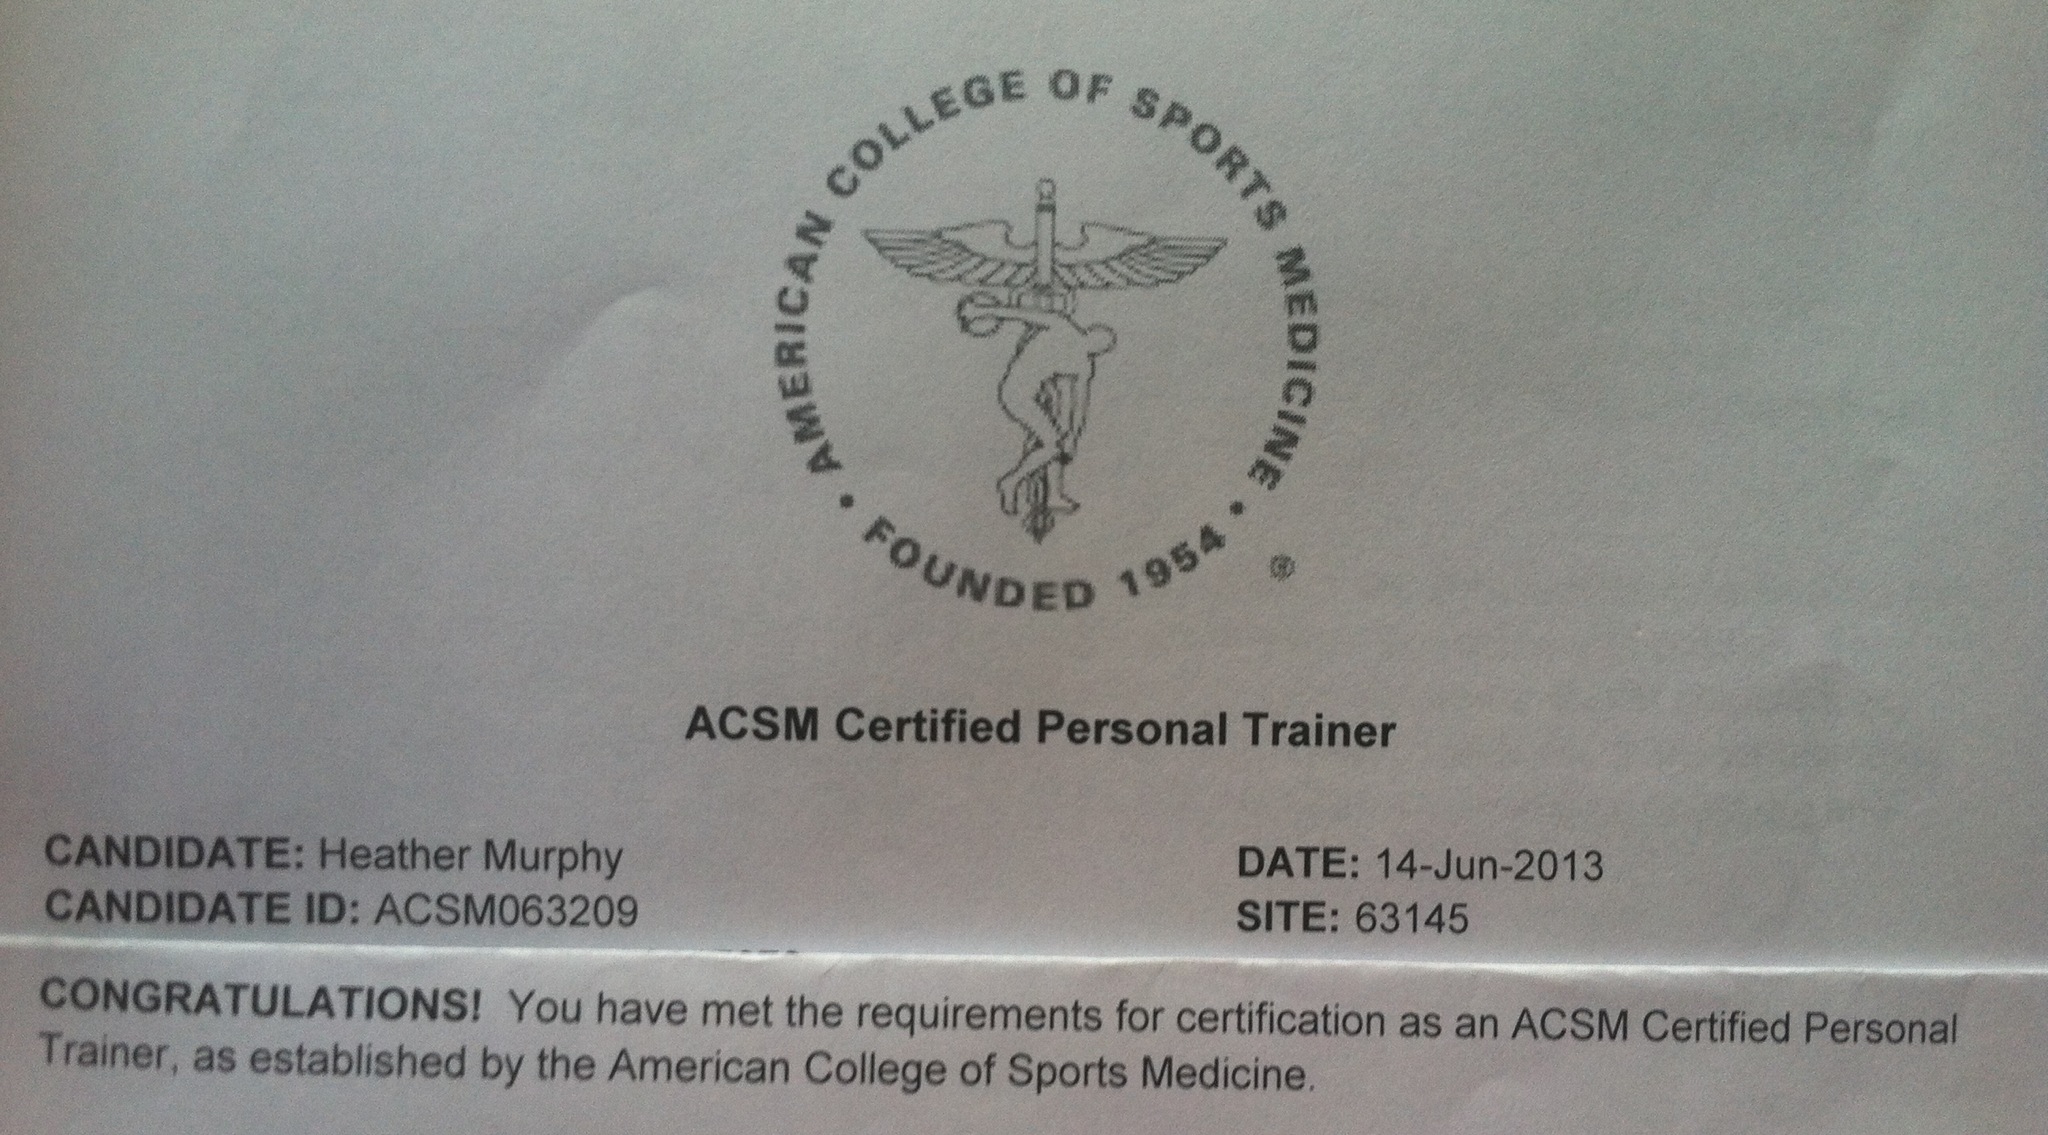 How I Passed My Acsm Certified Personal Training Certification Exam